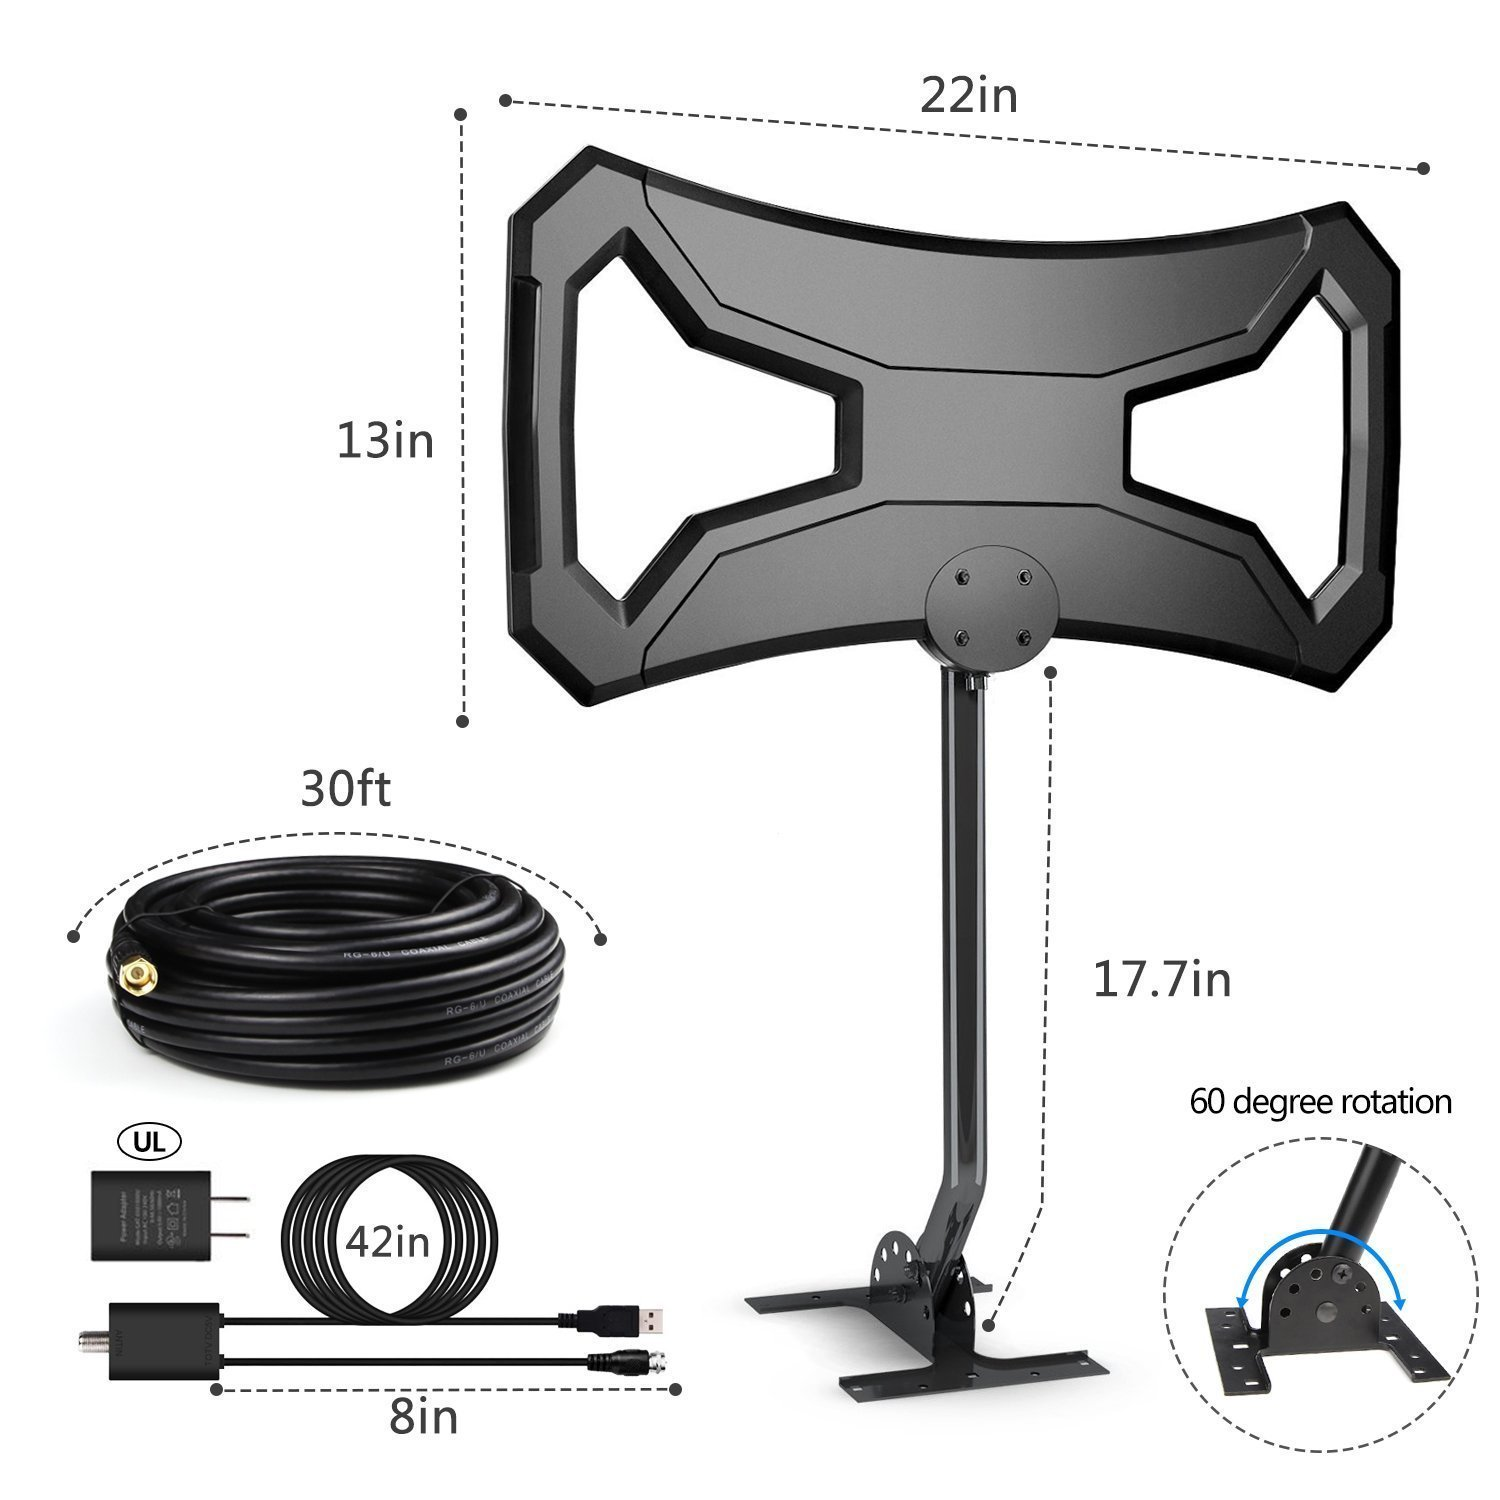 Efind 150 Miles Amplifier HDTV Antenna - Long Range TV Antenna Omni-Directional with Pole Mount for 4K FM/VHF/UHF Free Channels Digital Antenna 33ft RG-6 Copper Cable by efind (Image #5)